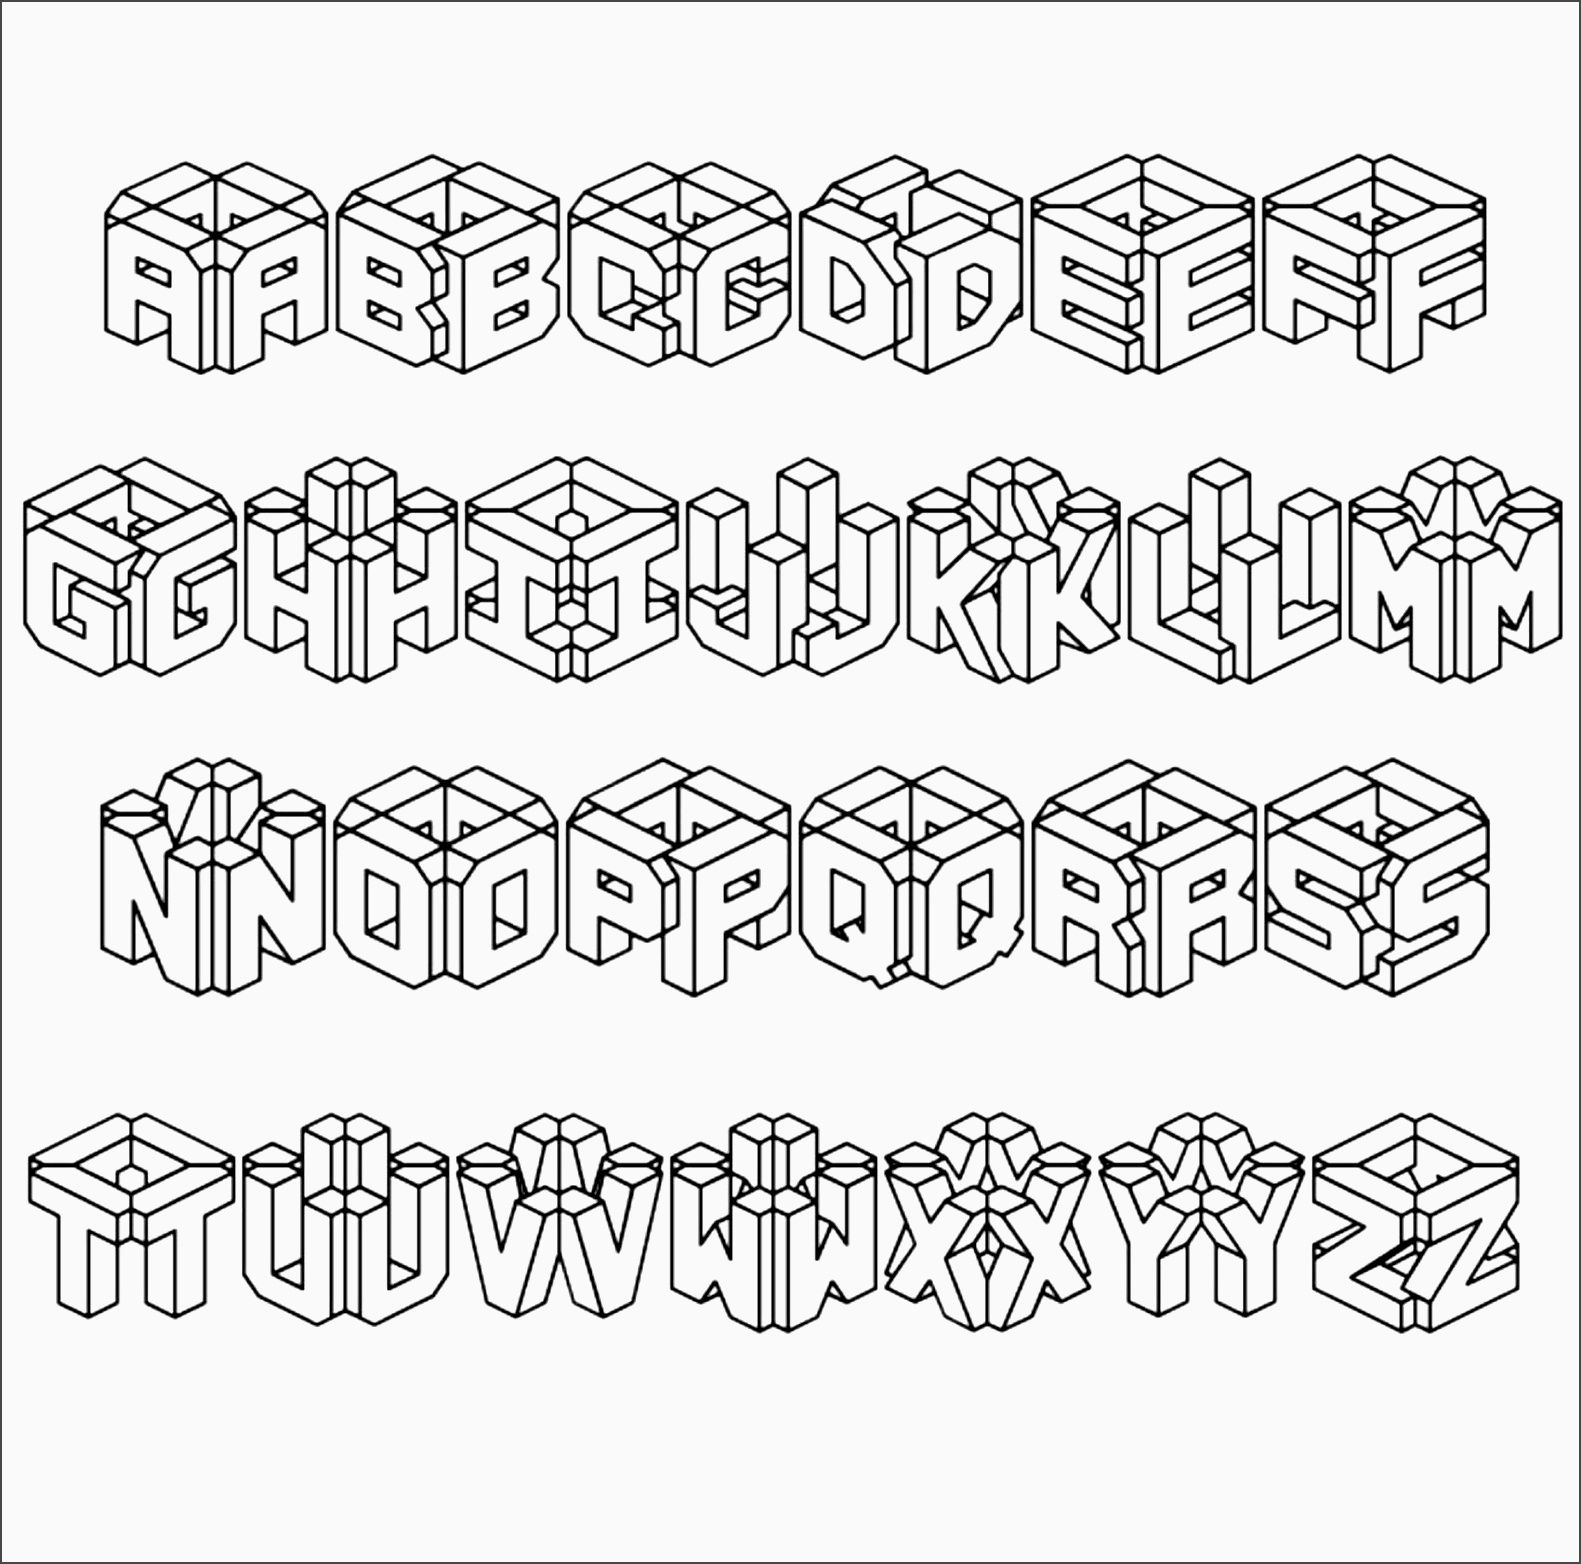 3d graffiti bubble letters graffiti alphabet bubble letters az a z to coloring pages